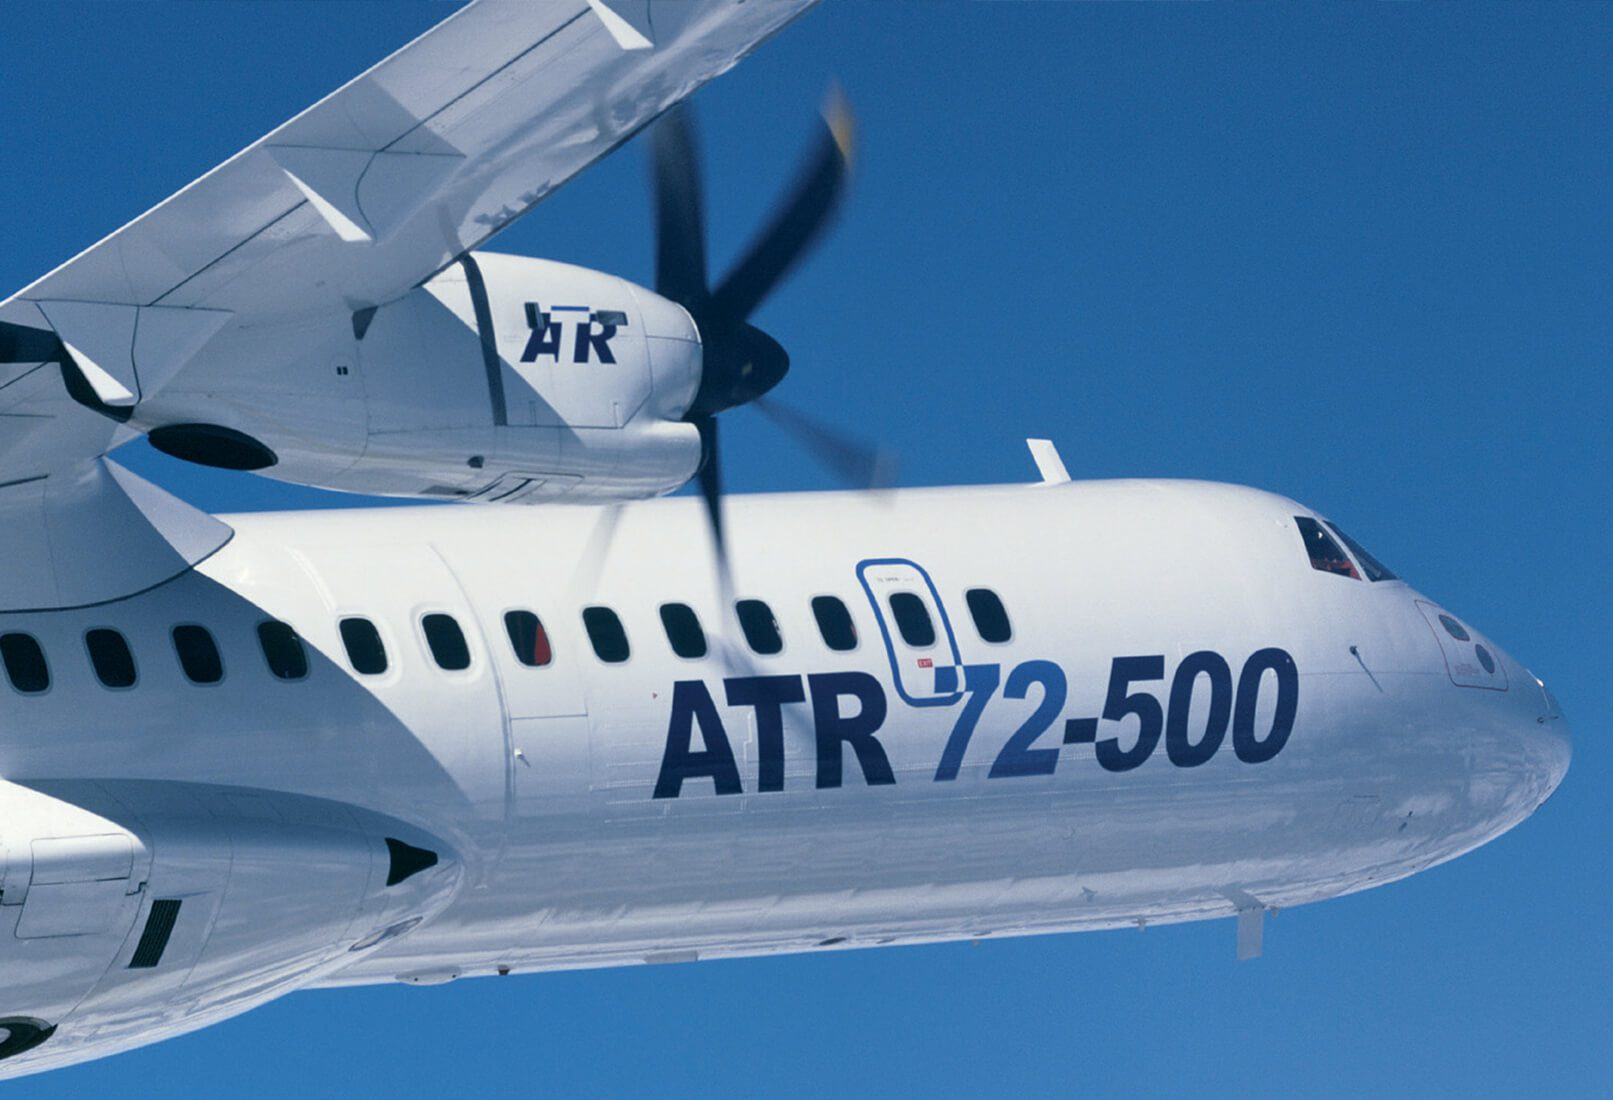 Falko adds 2 ATR72-500 aircraft to portfolio